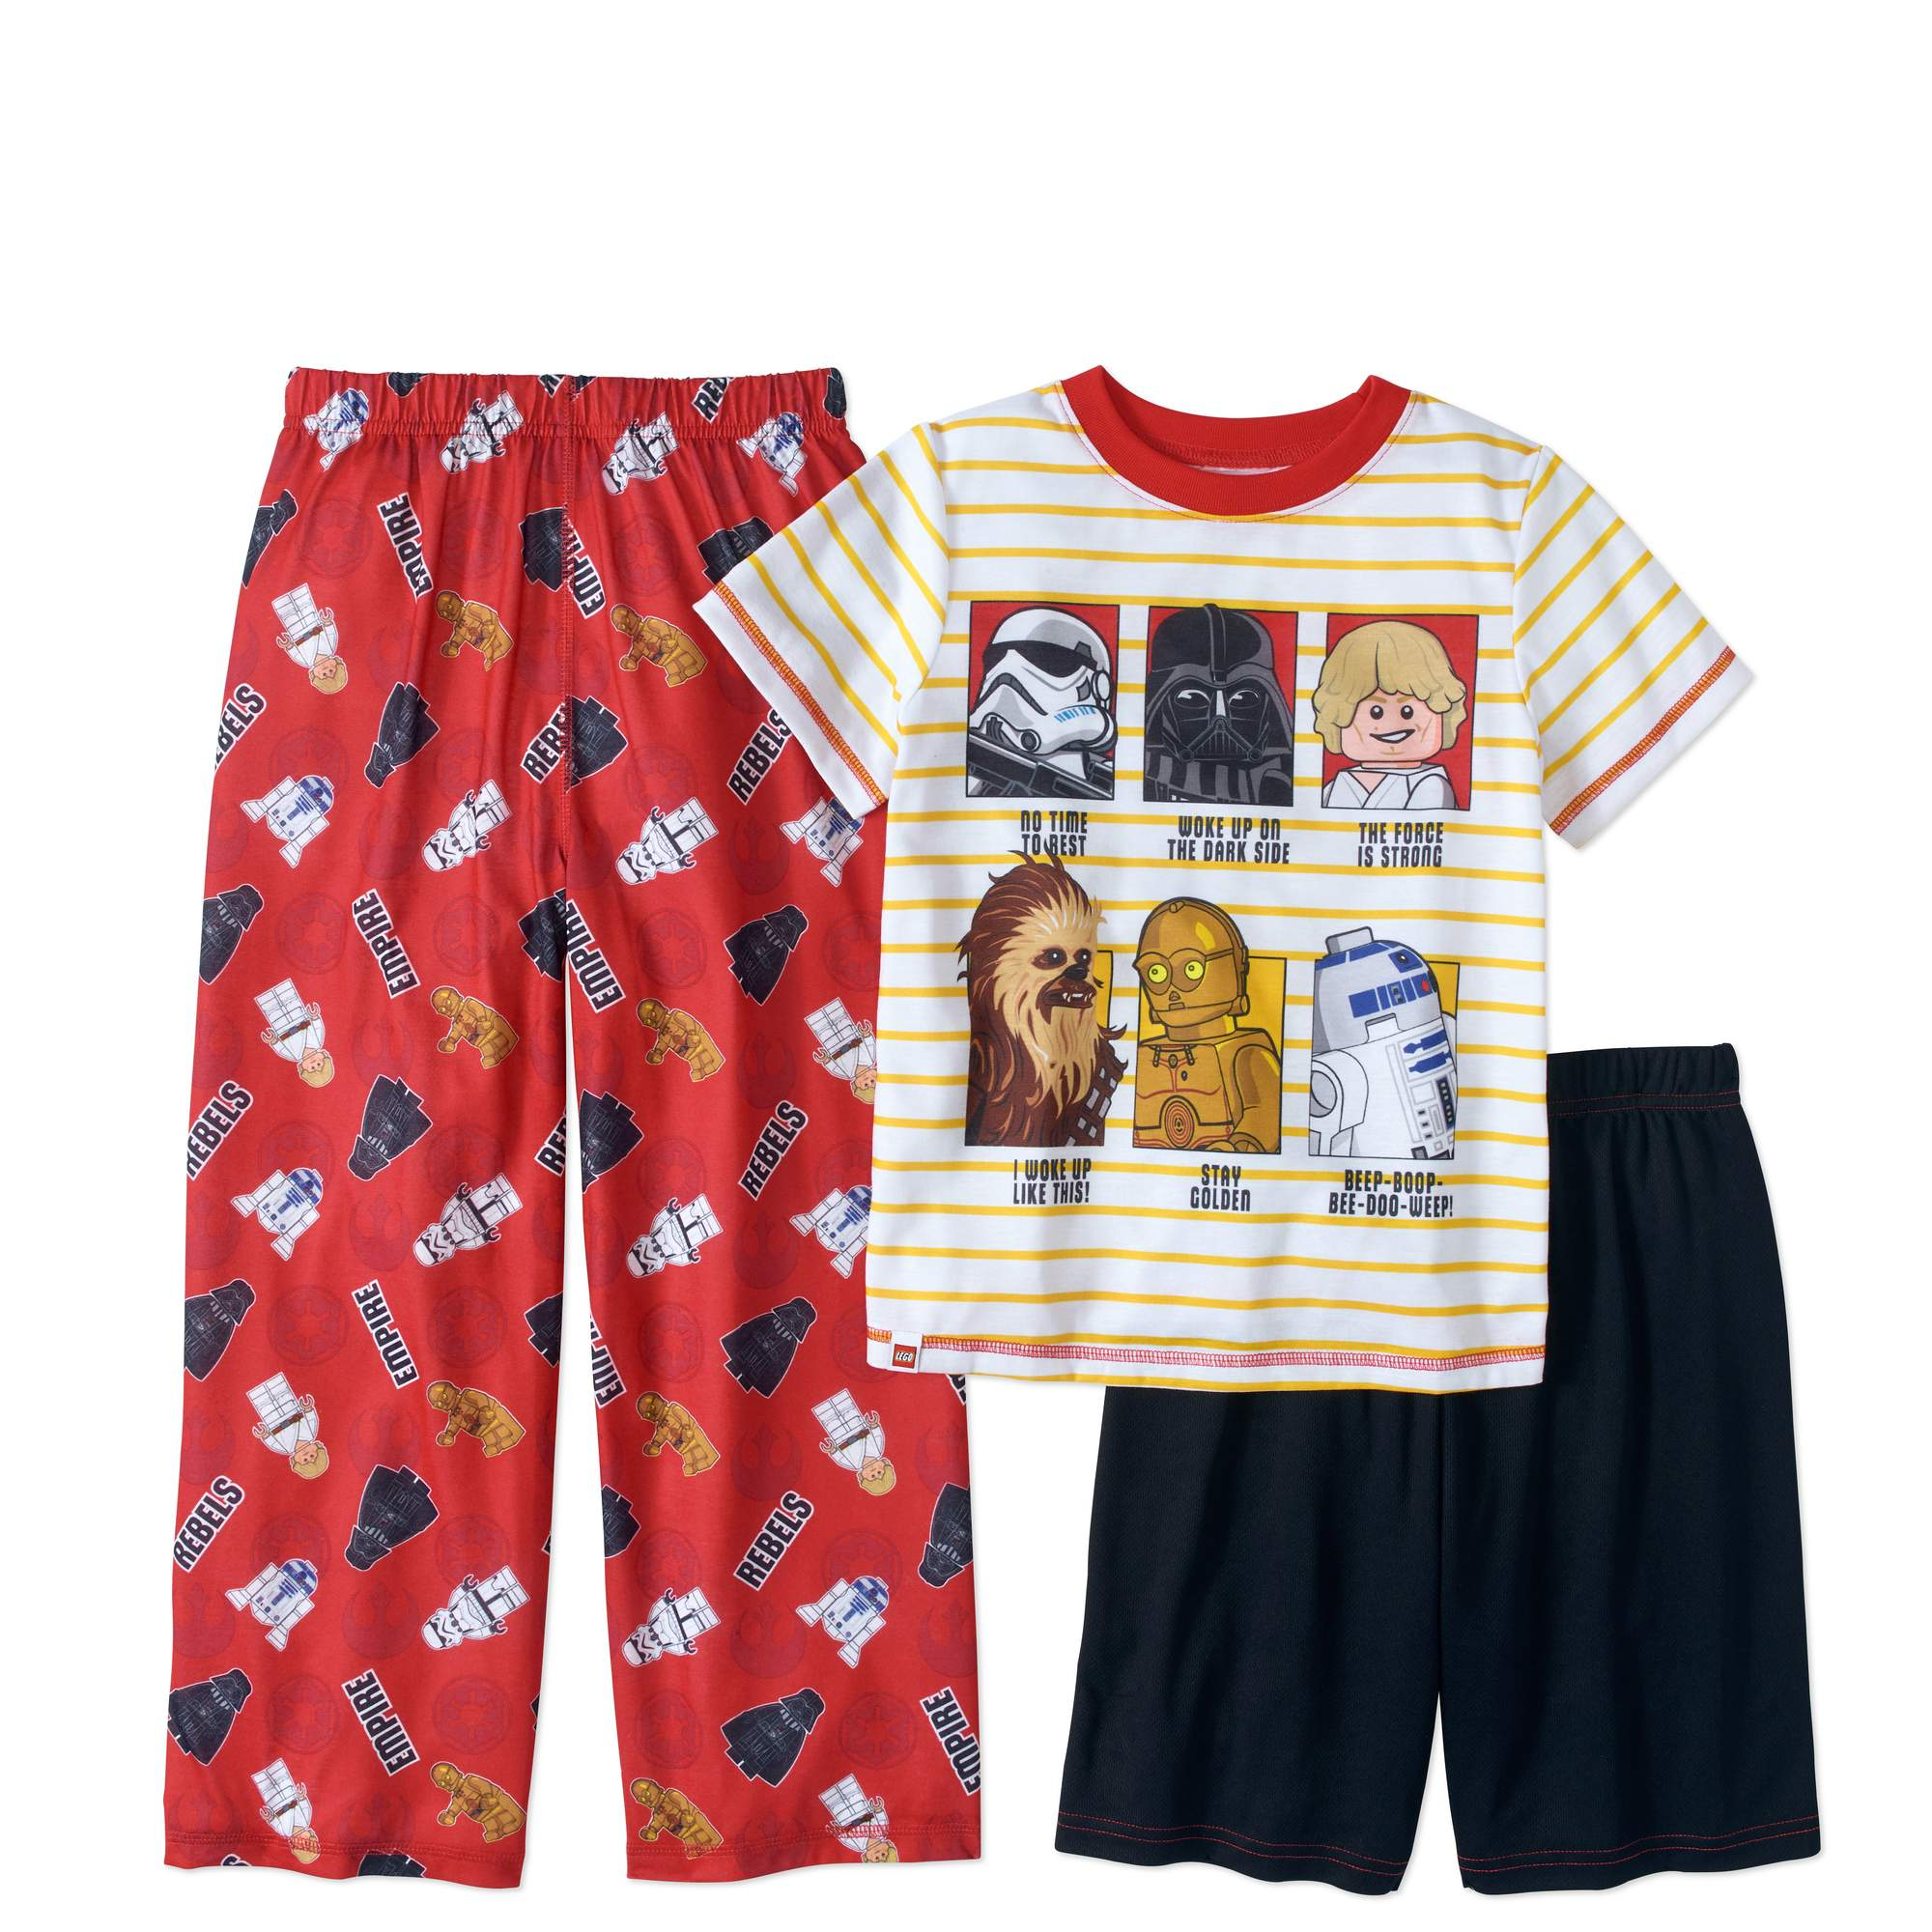 LEGO Star Wars Boys' Character 3 Piece Pajama Set